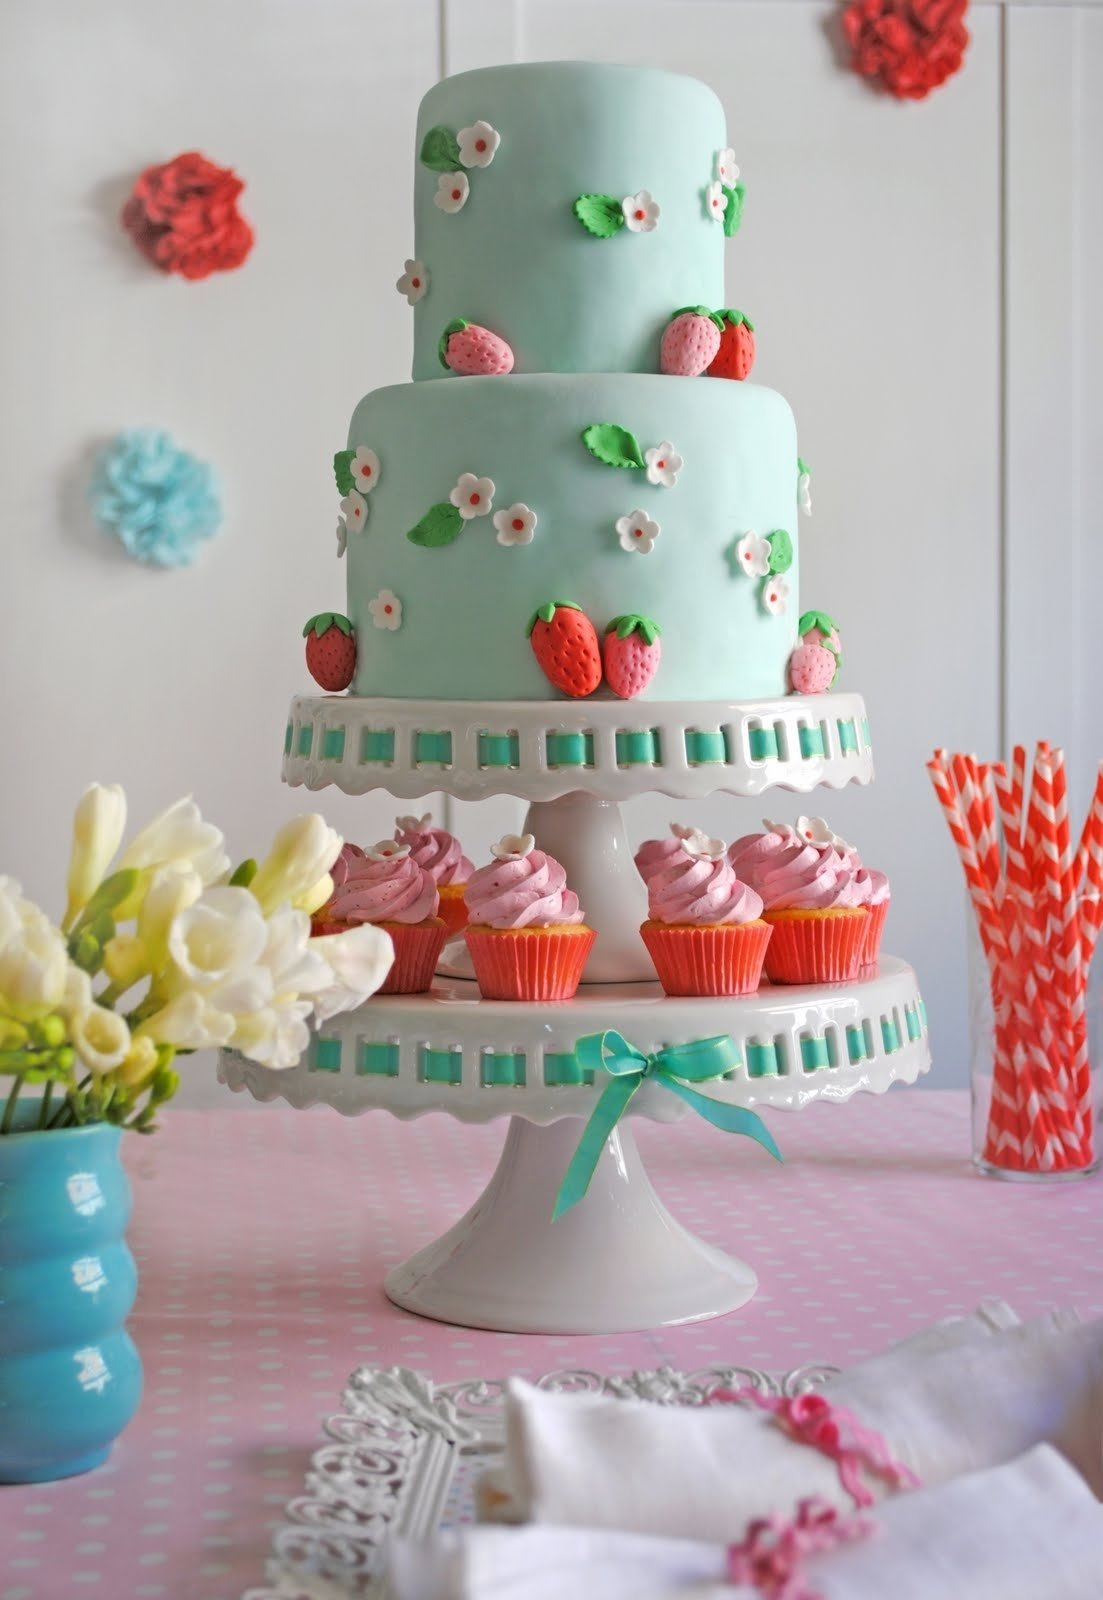 10 Nice 10Th Birthday Party Ideas For Girls 50 birthday party themes for girls i heart nap time 48 2021